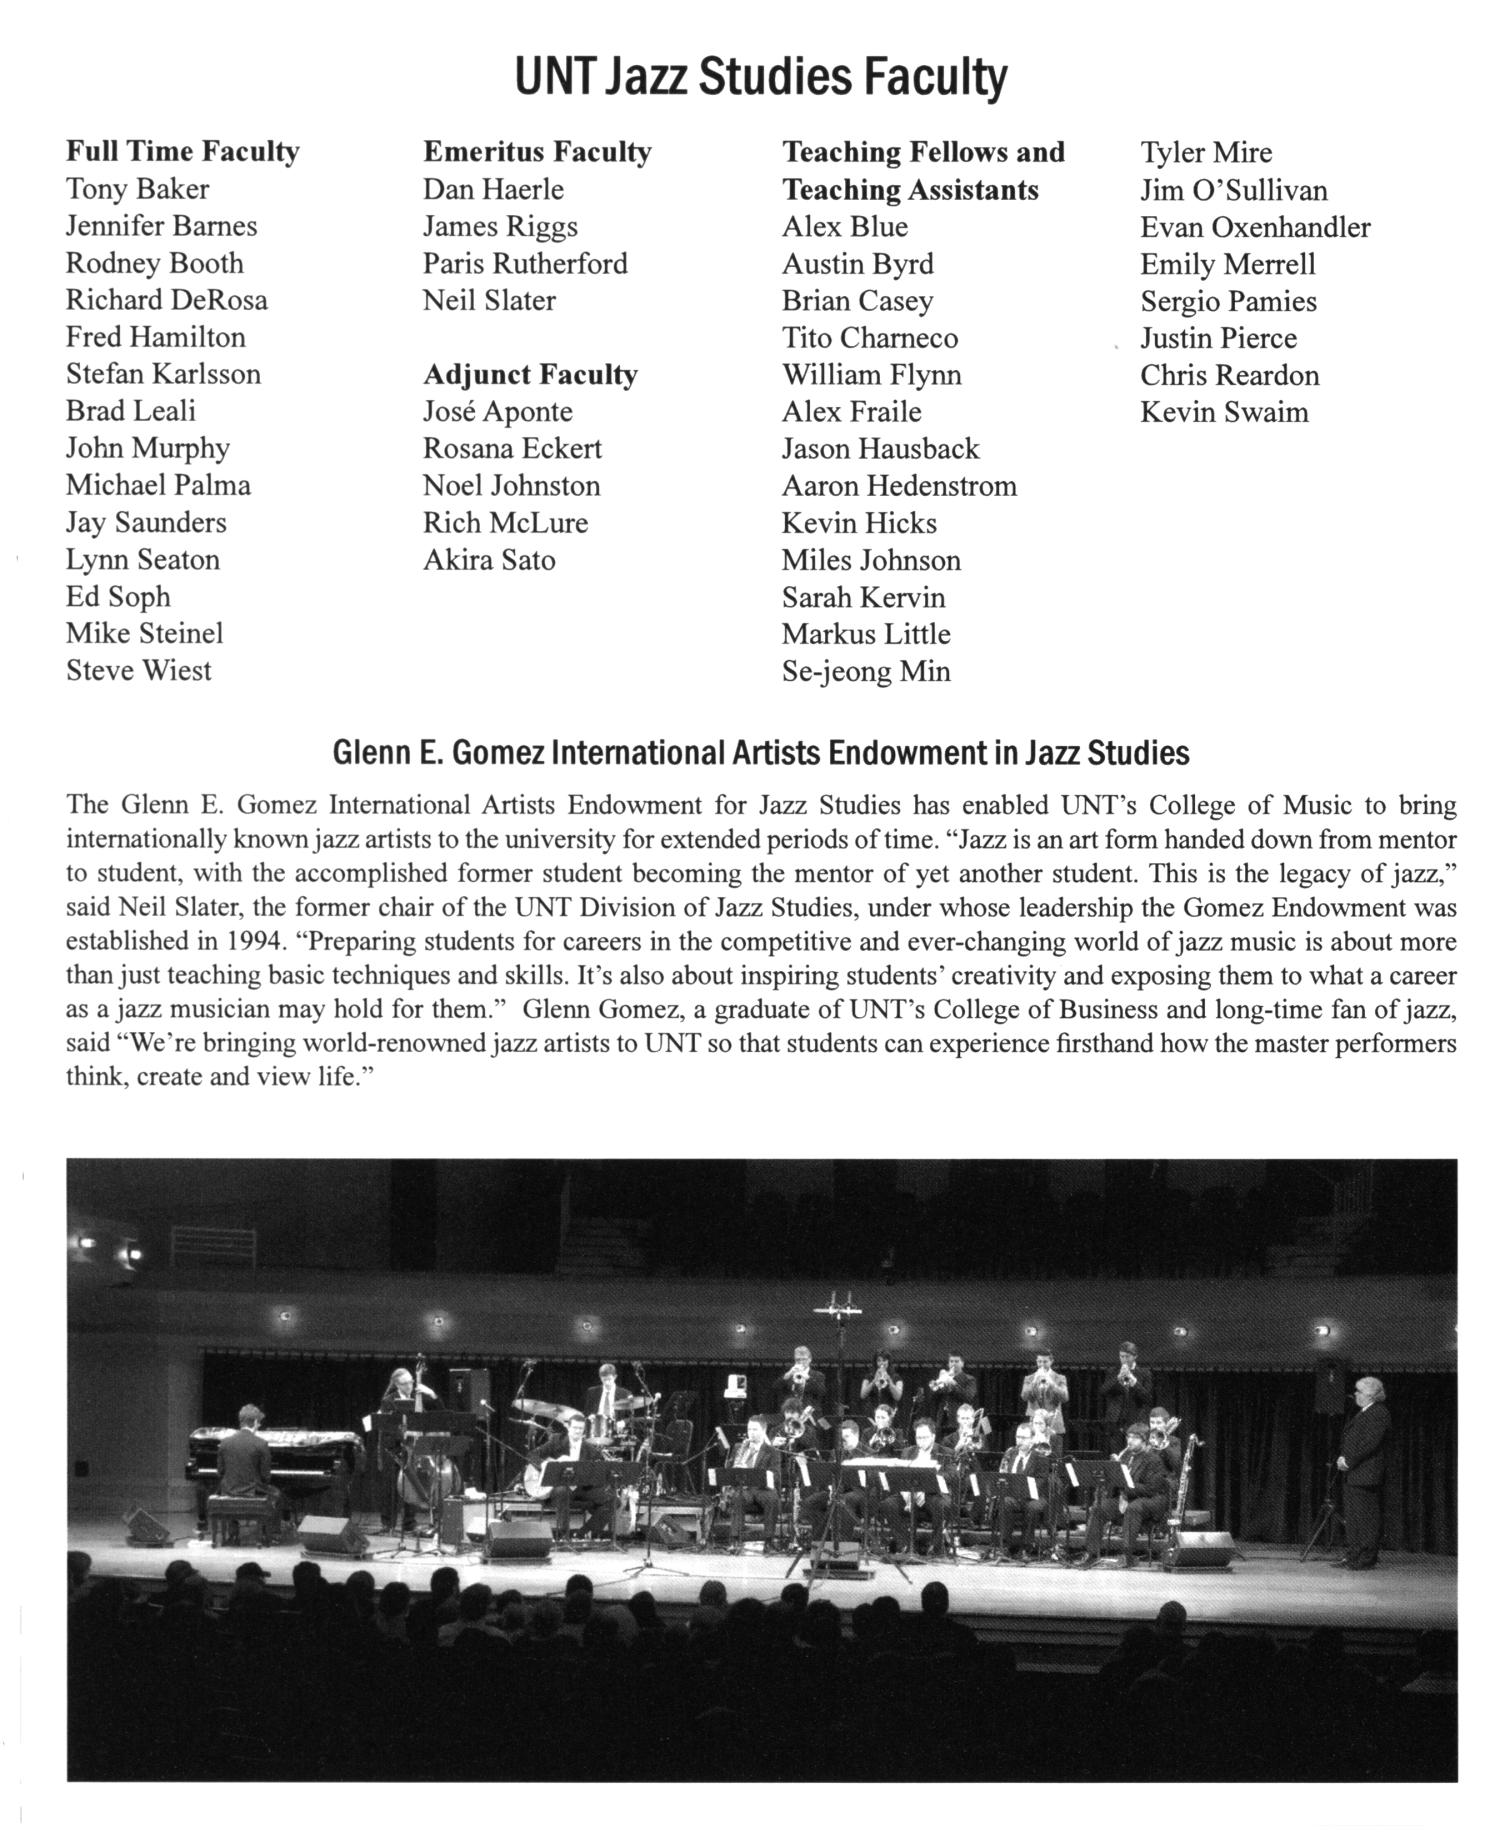 College of Music Program Book 2011-2012: Ensemble & Other Performances, Volume 3                                                                                                      10